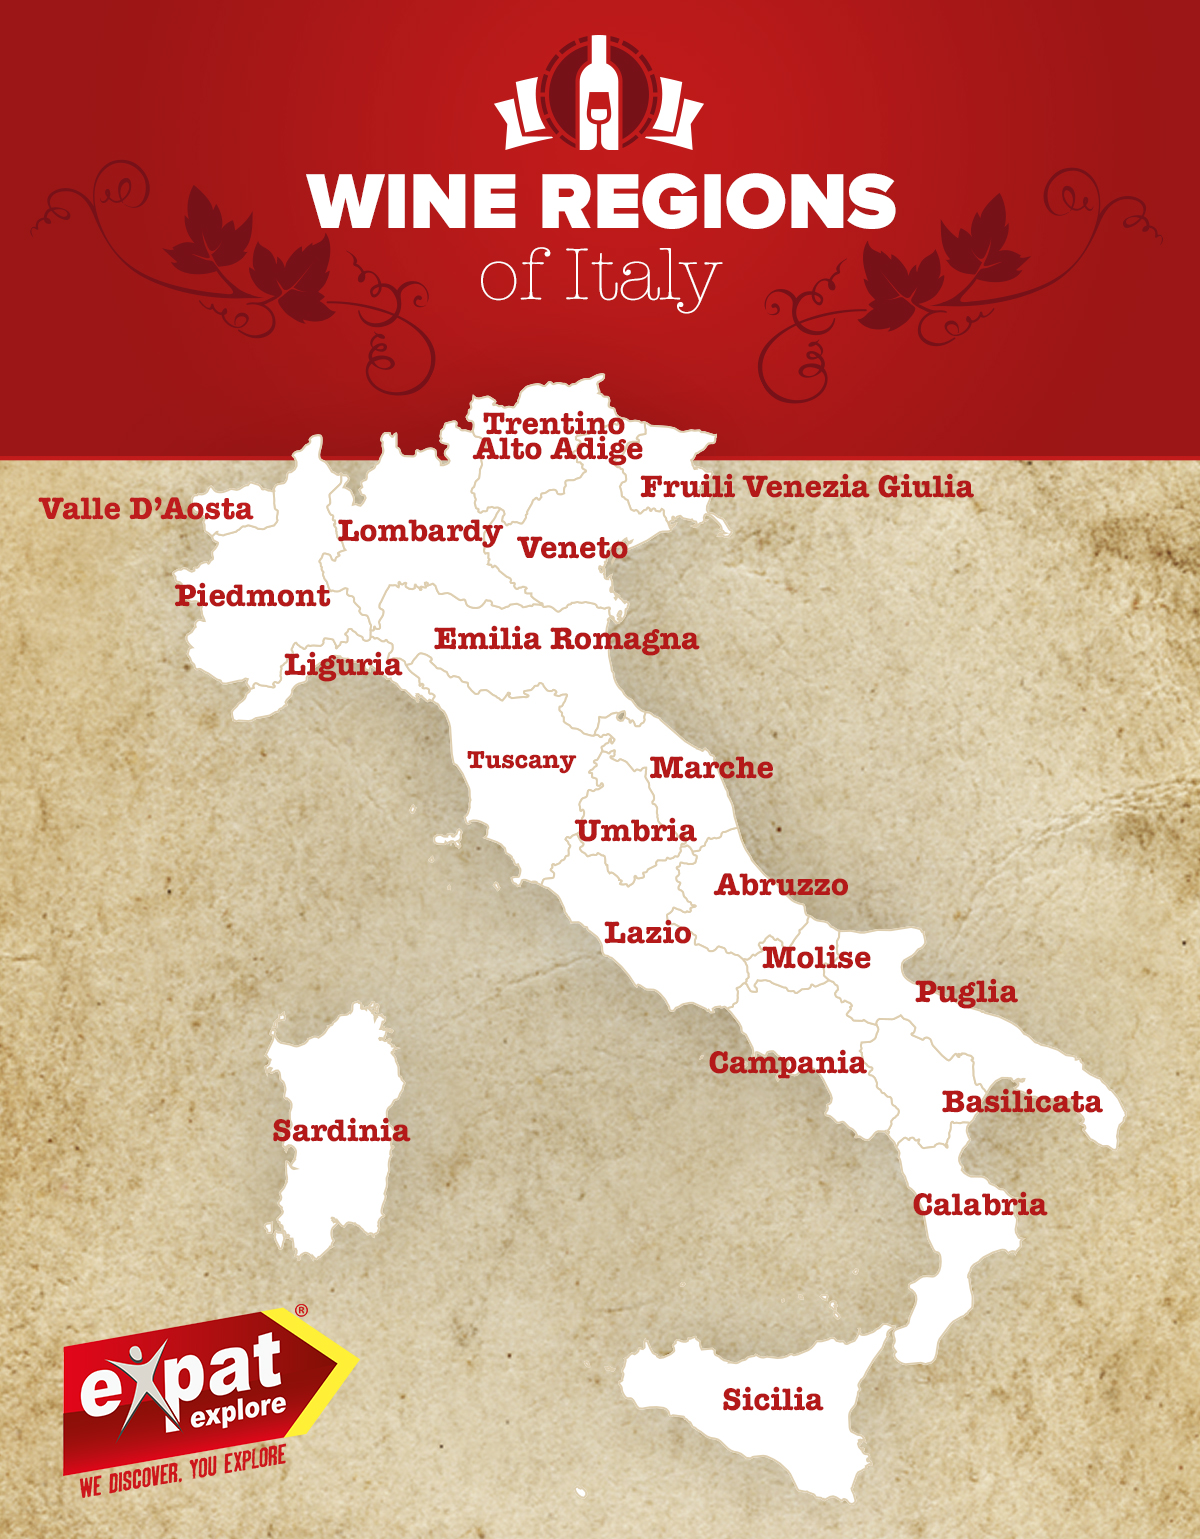 Wine Region Italy Map.Italy S 20 Wine Regions And What To Drink Where Expat Explore